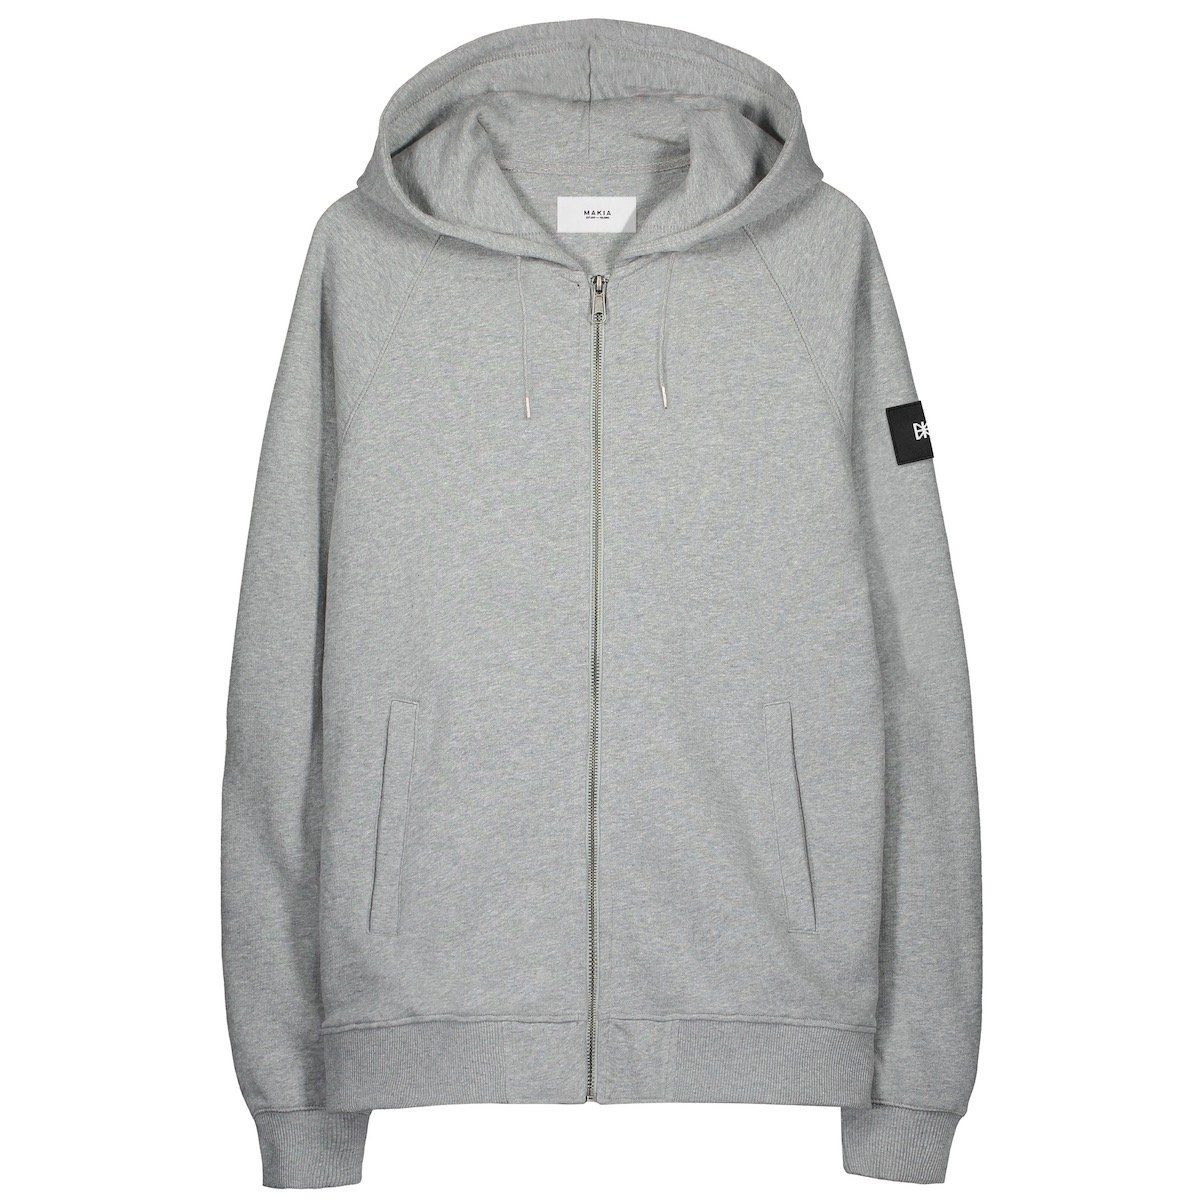 Makia Branch Hooded Sweat - Grey Small